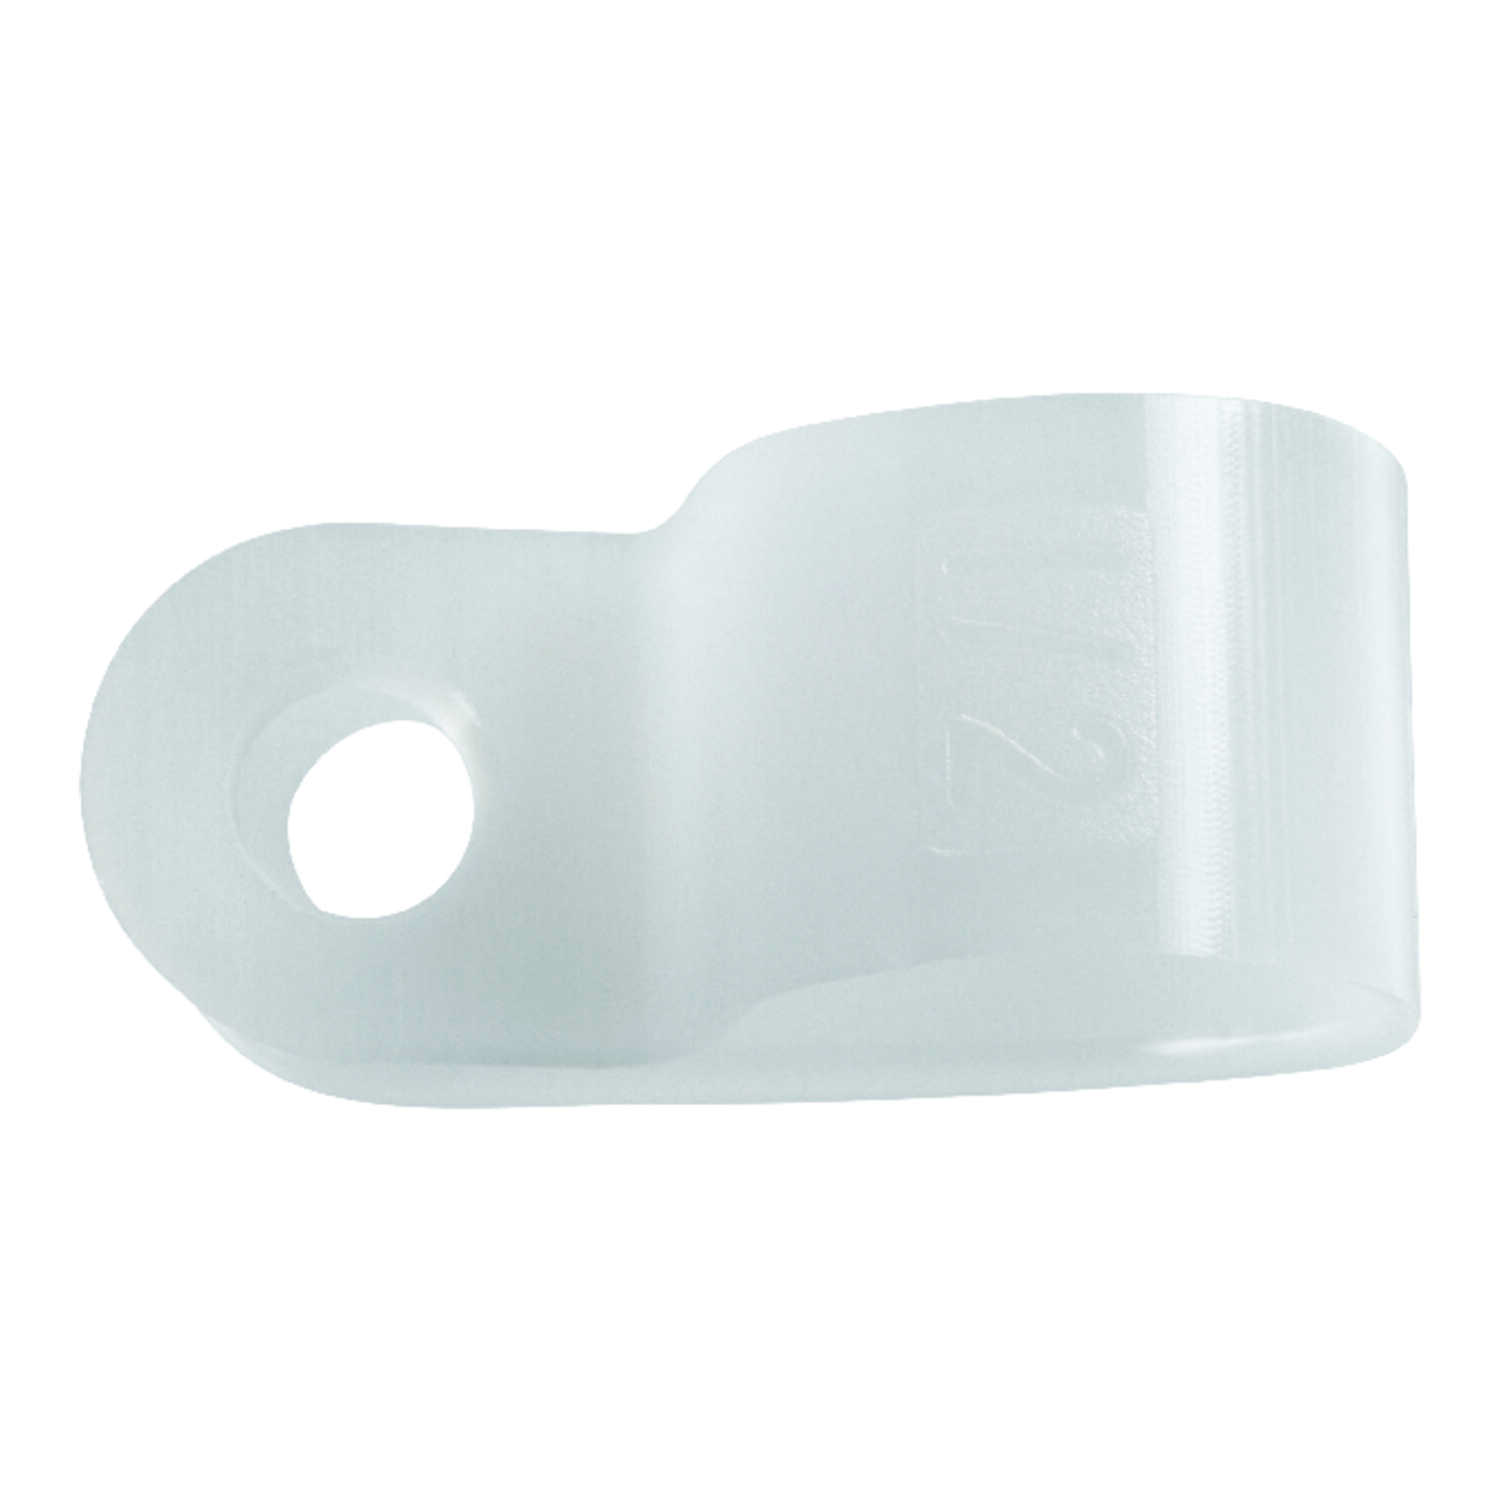 Jandorf  1/2 in. Dia. Nylon  Cable Clamp  3 pk